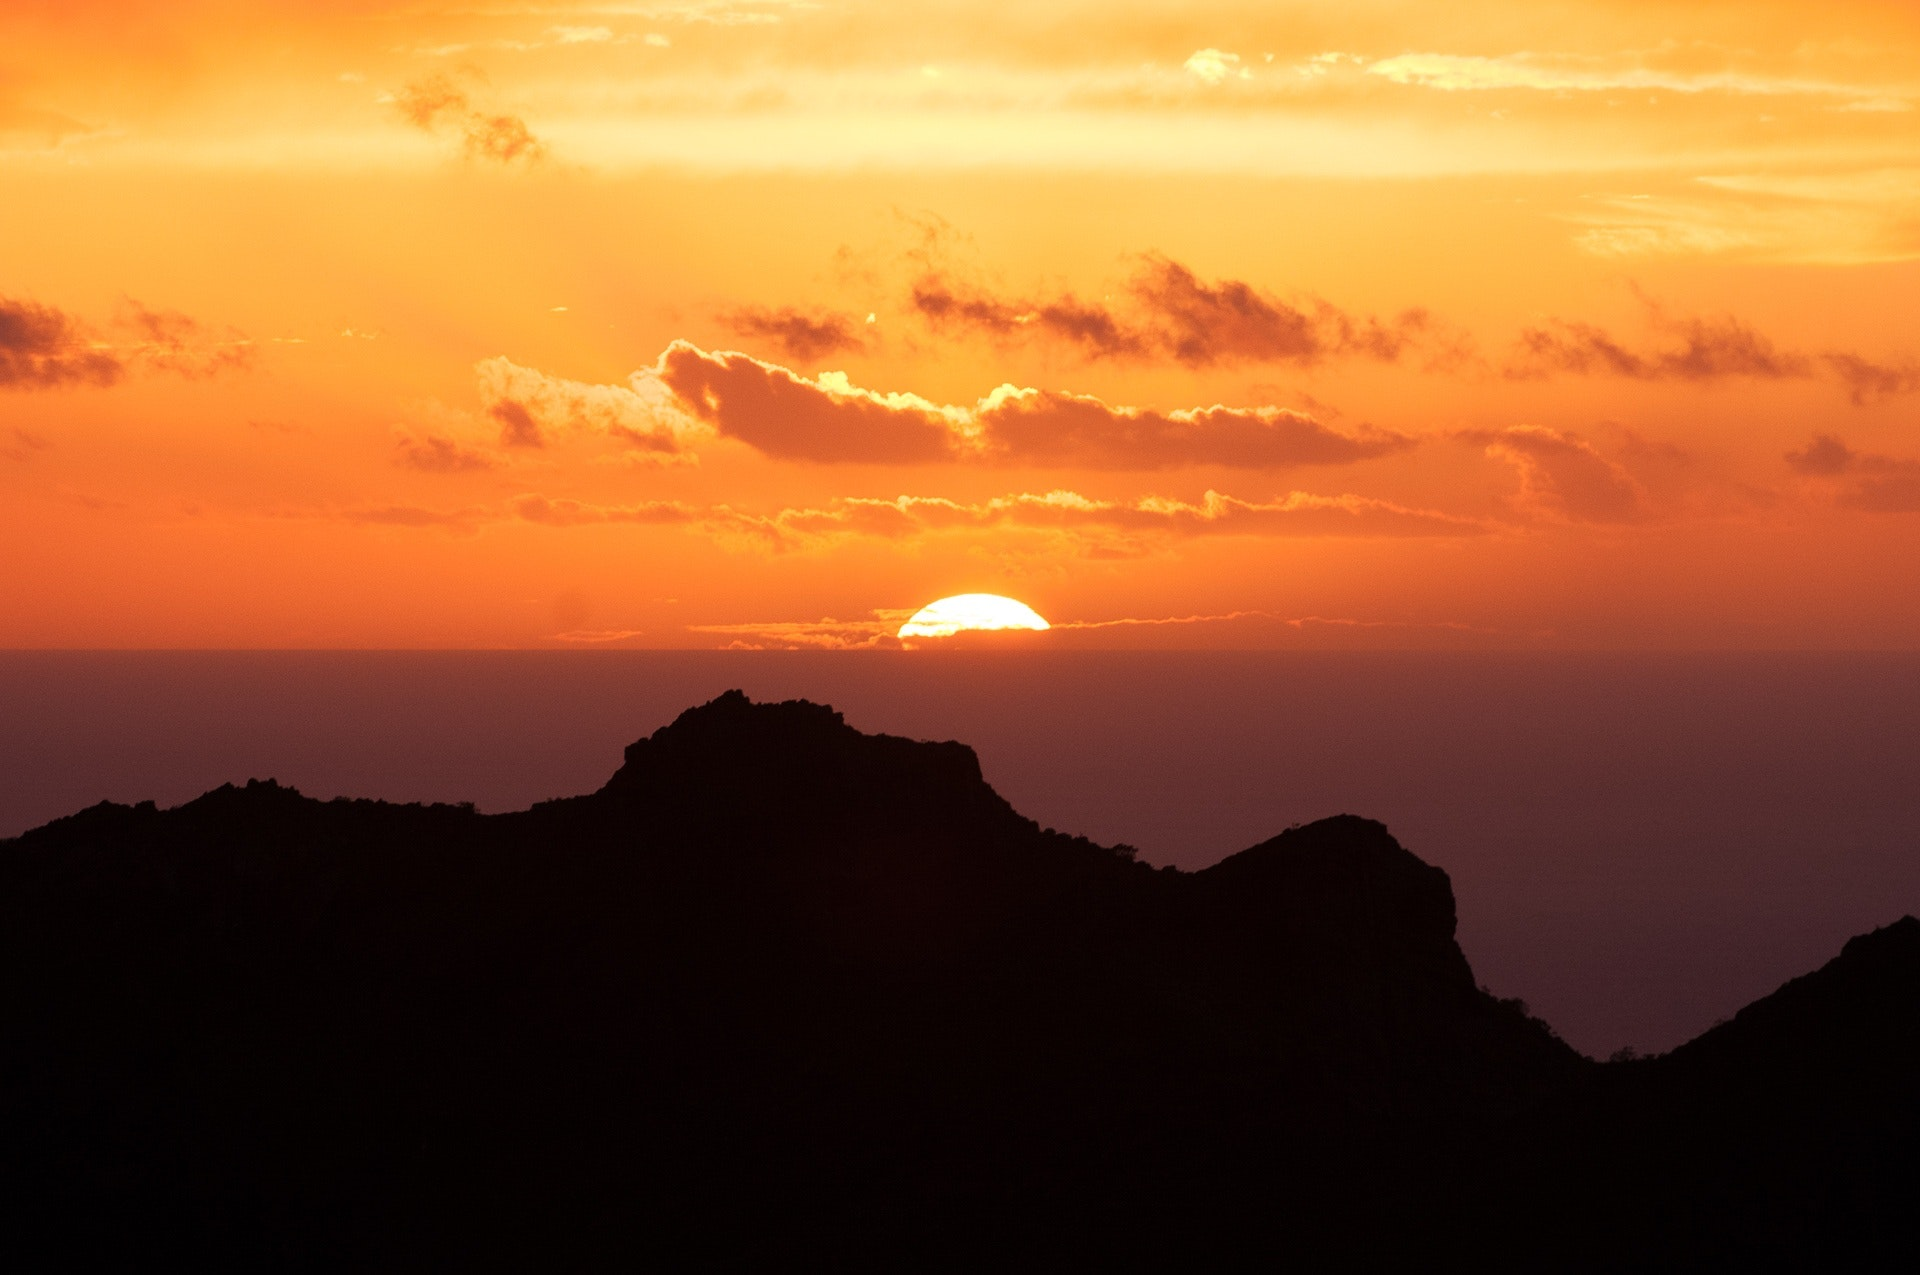 Silhouette of Mountain Under Sunset, Clouds, Mountain, Silhouette, Sky, HQ Photo